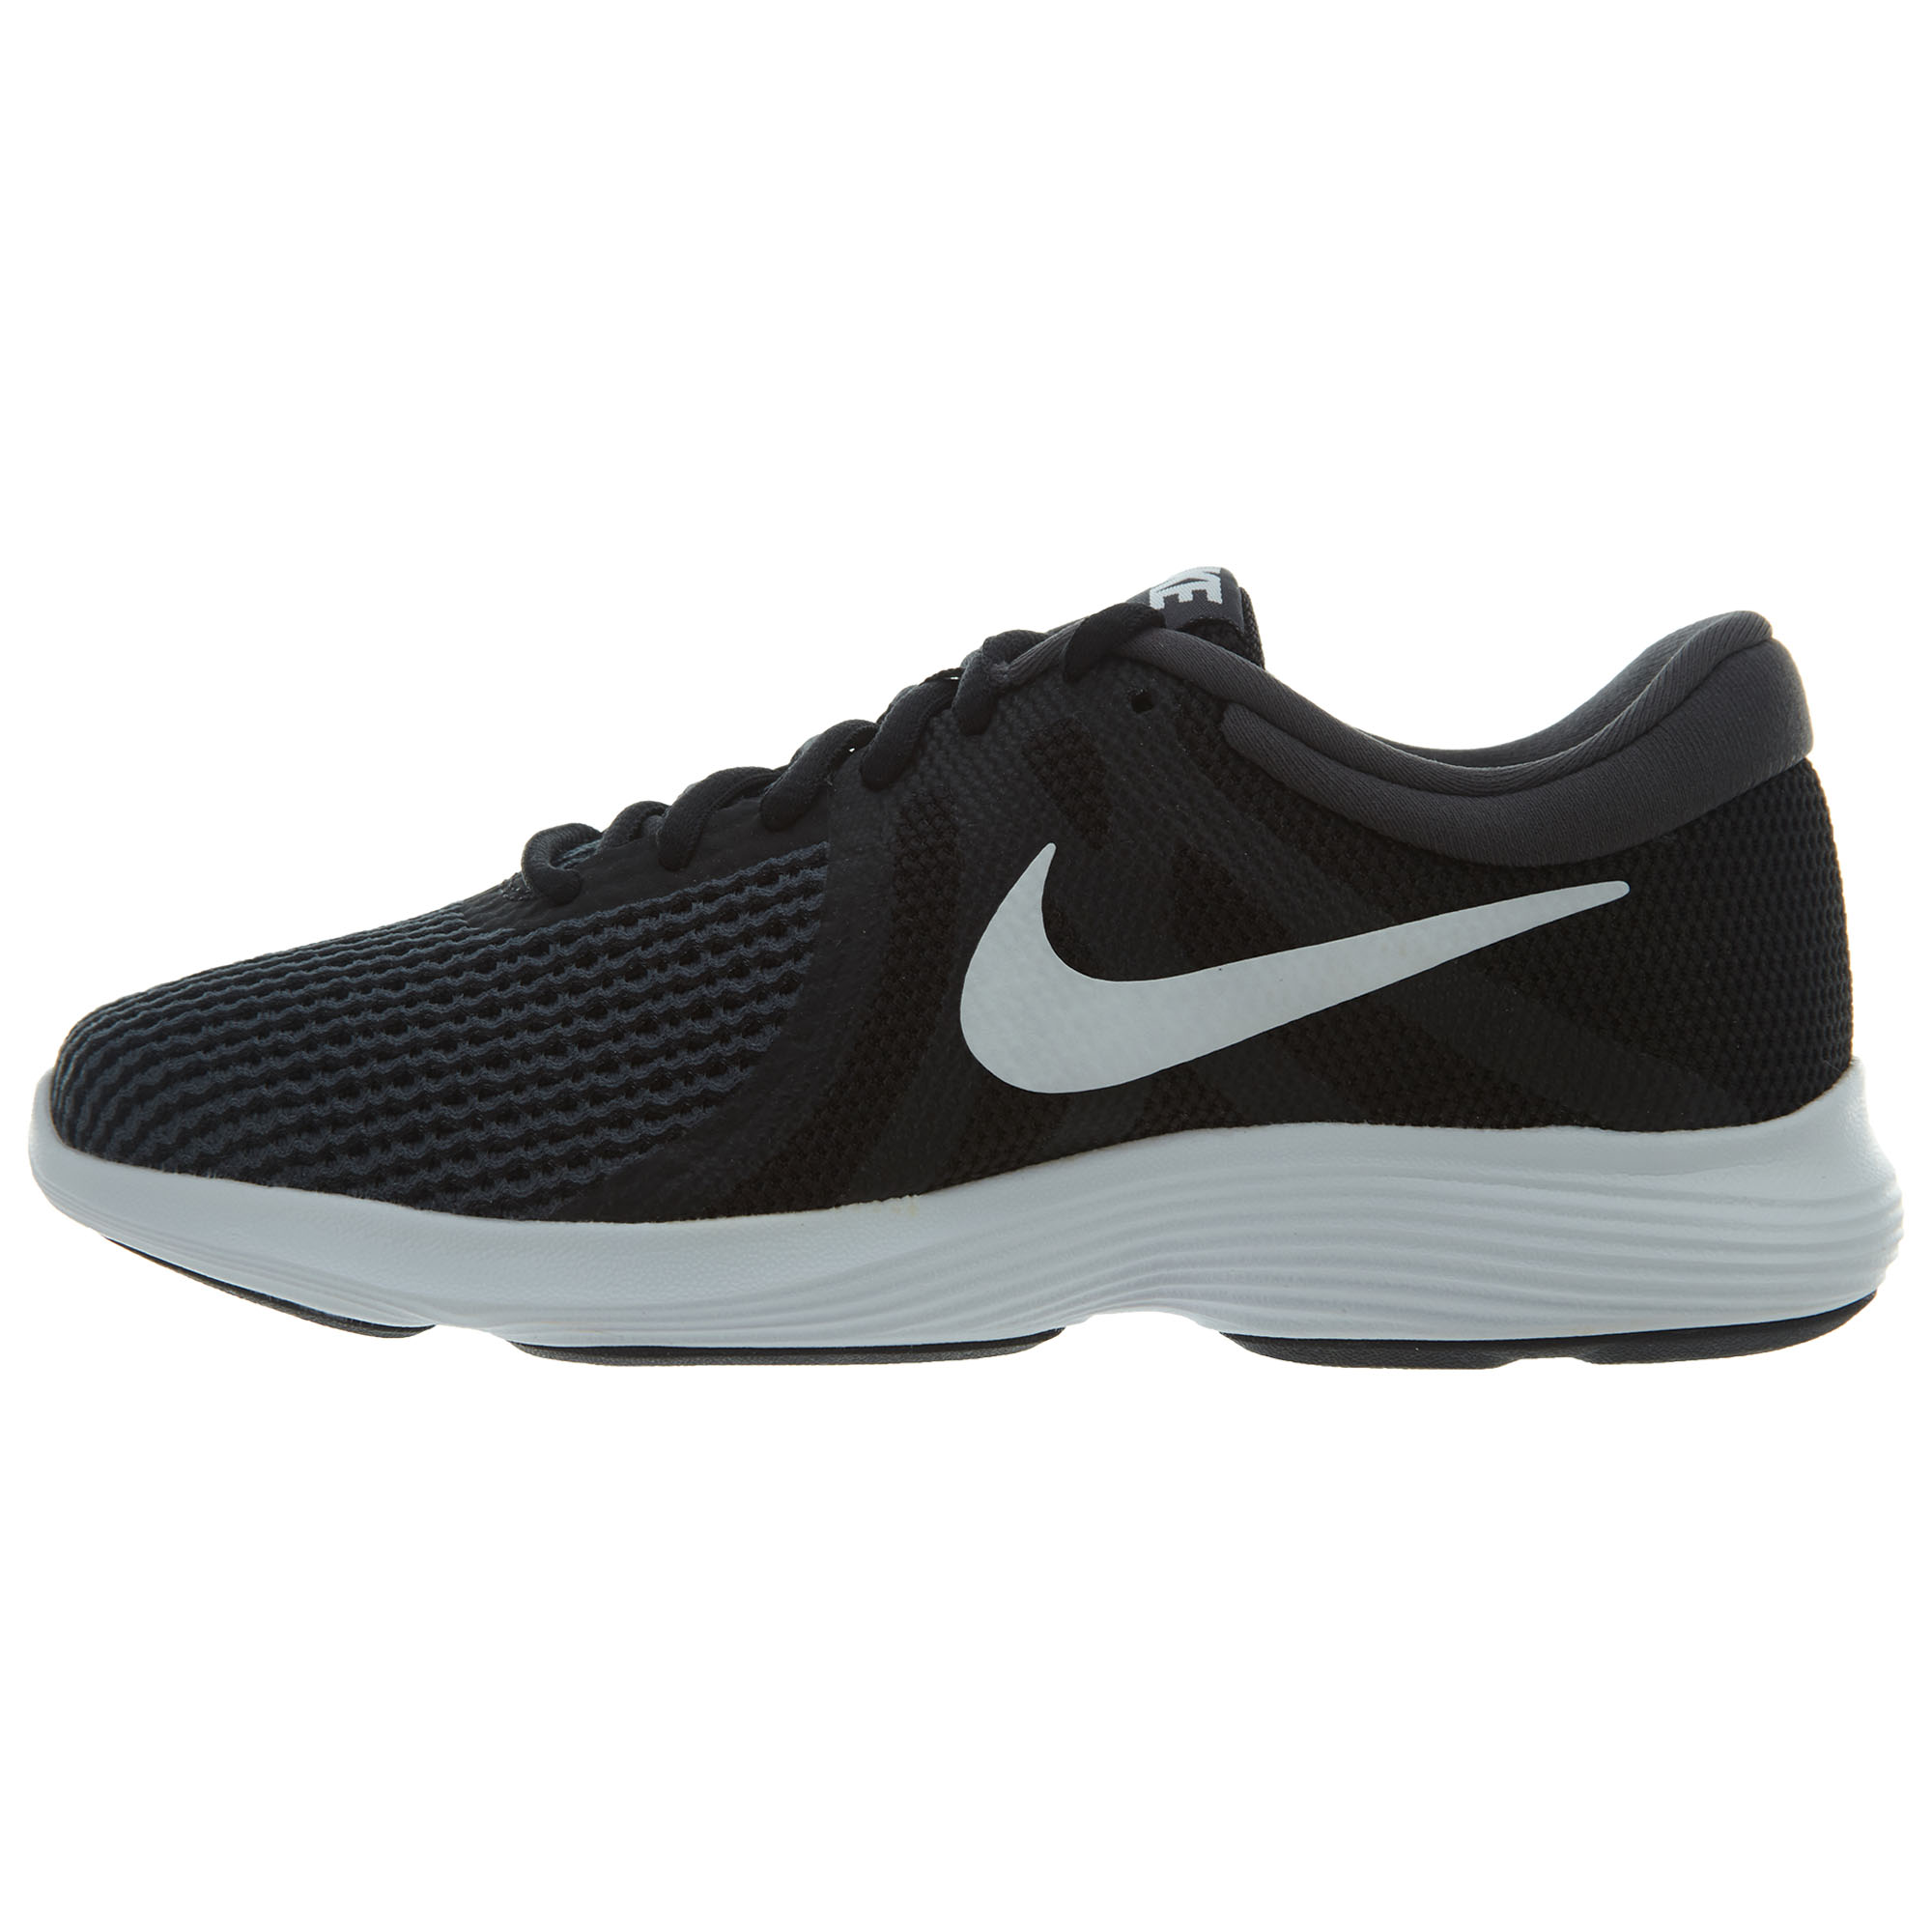 8d254369b79 Details about Nike Womens Revolution 4 Wide Sneakers AH8799-001